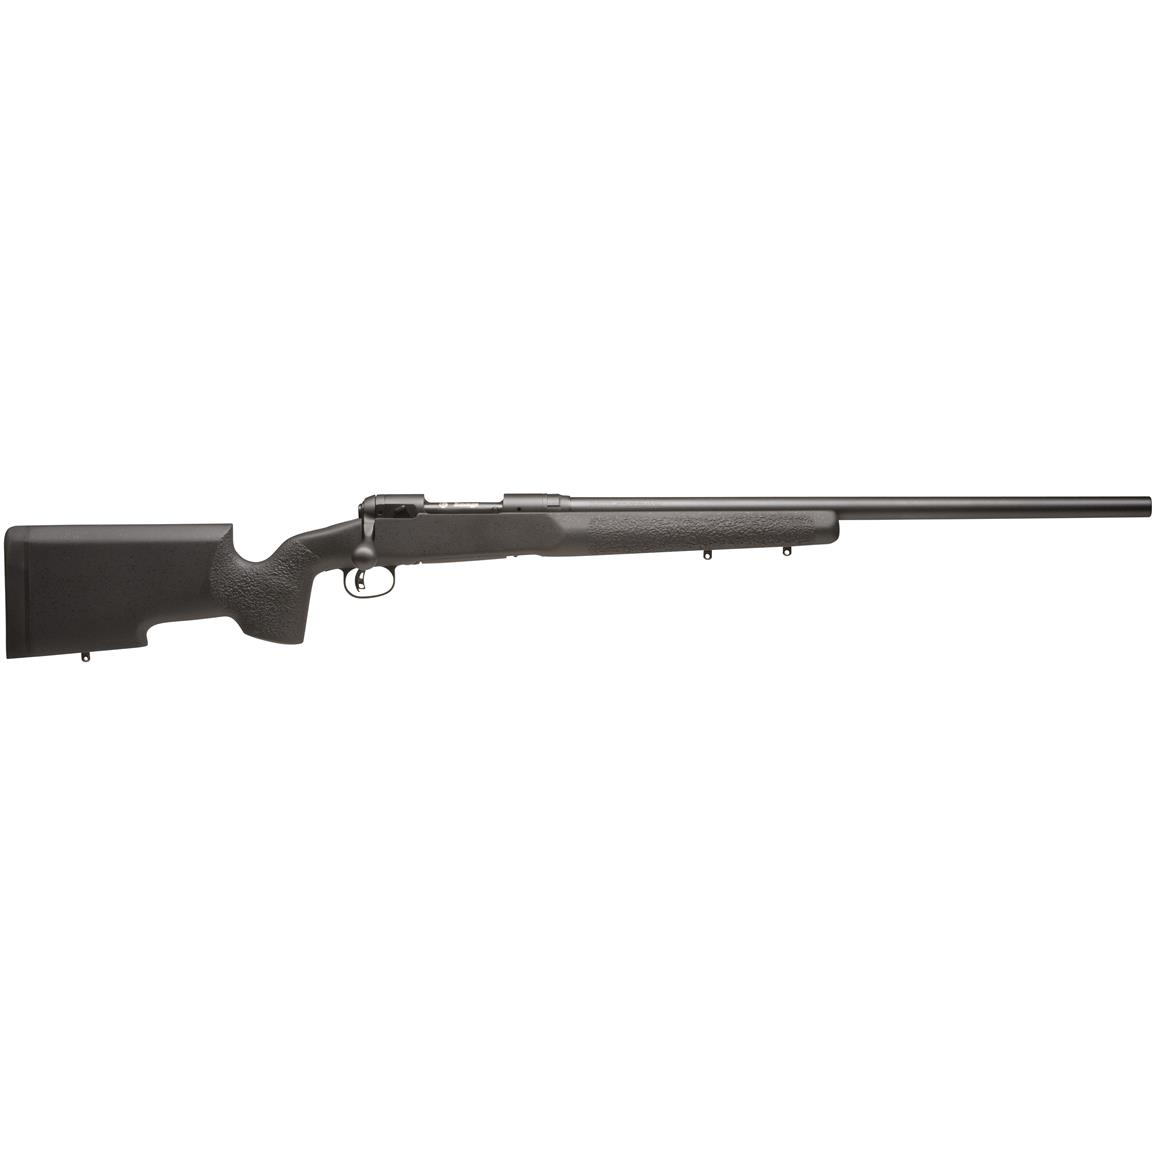 "Savage 10 FPC McMillan, Bolt Action, .308 Winchester, 24"" Barrel, 4+1 Rounds"